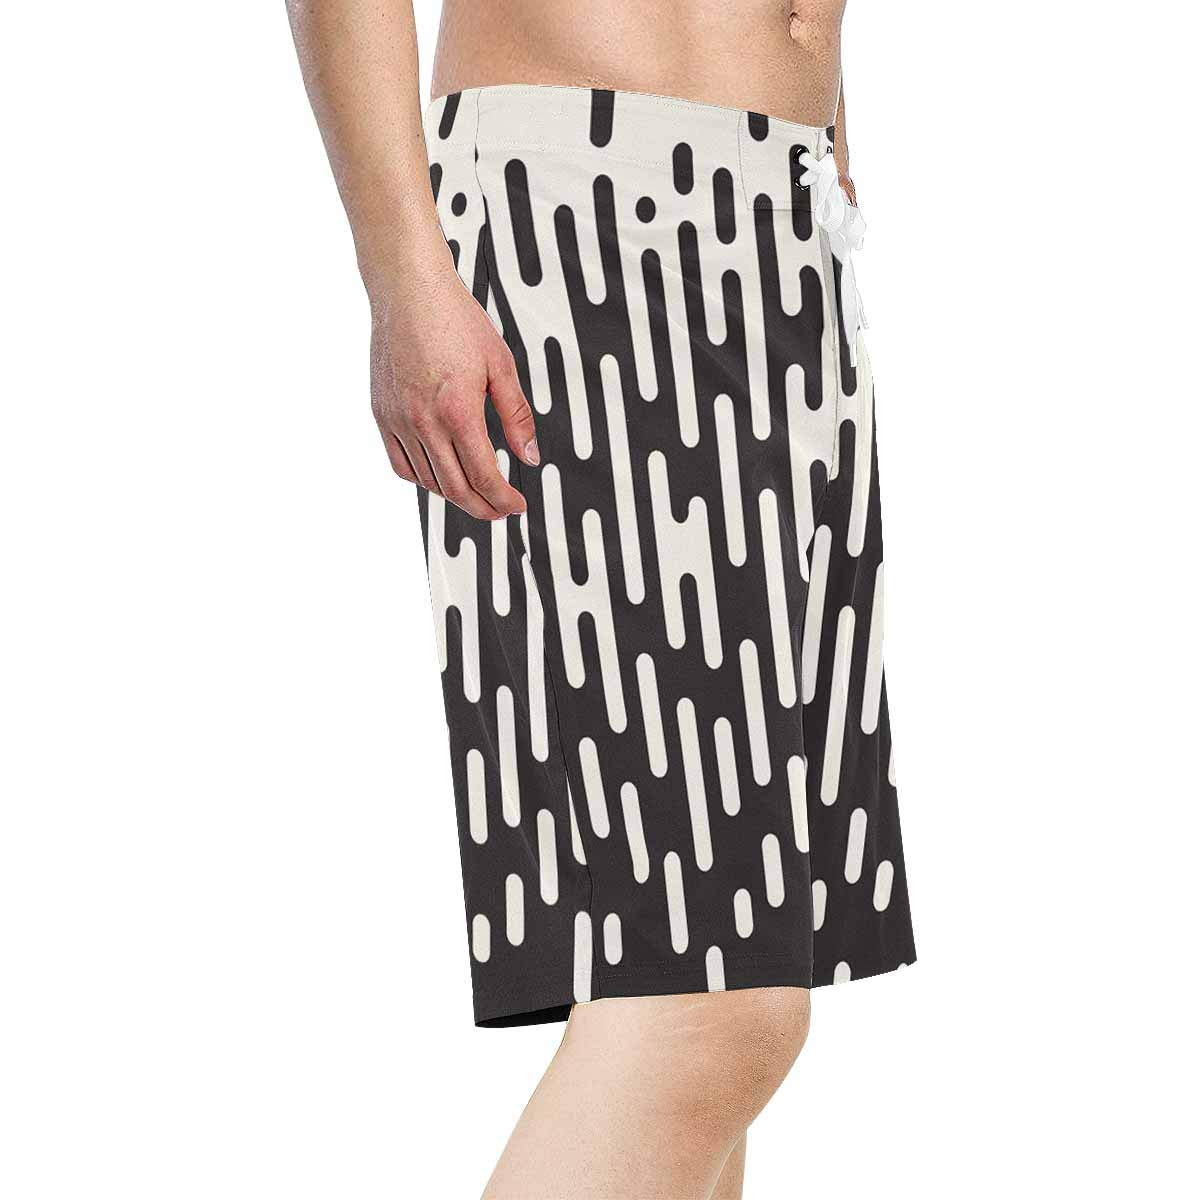 XS-6XL INTERESTPRINT Mens Swim Trunks Black White Round Quick Dry Beach Water Shorts